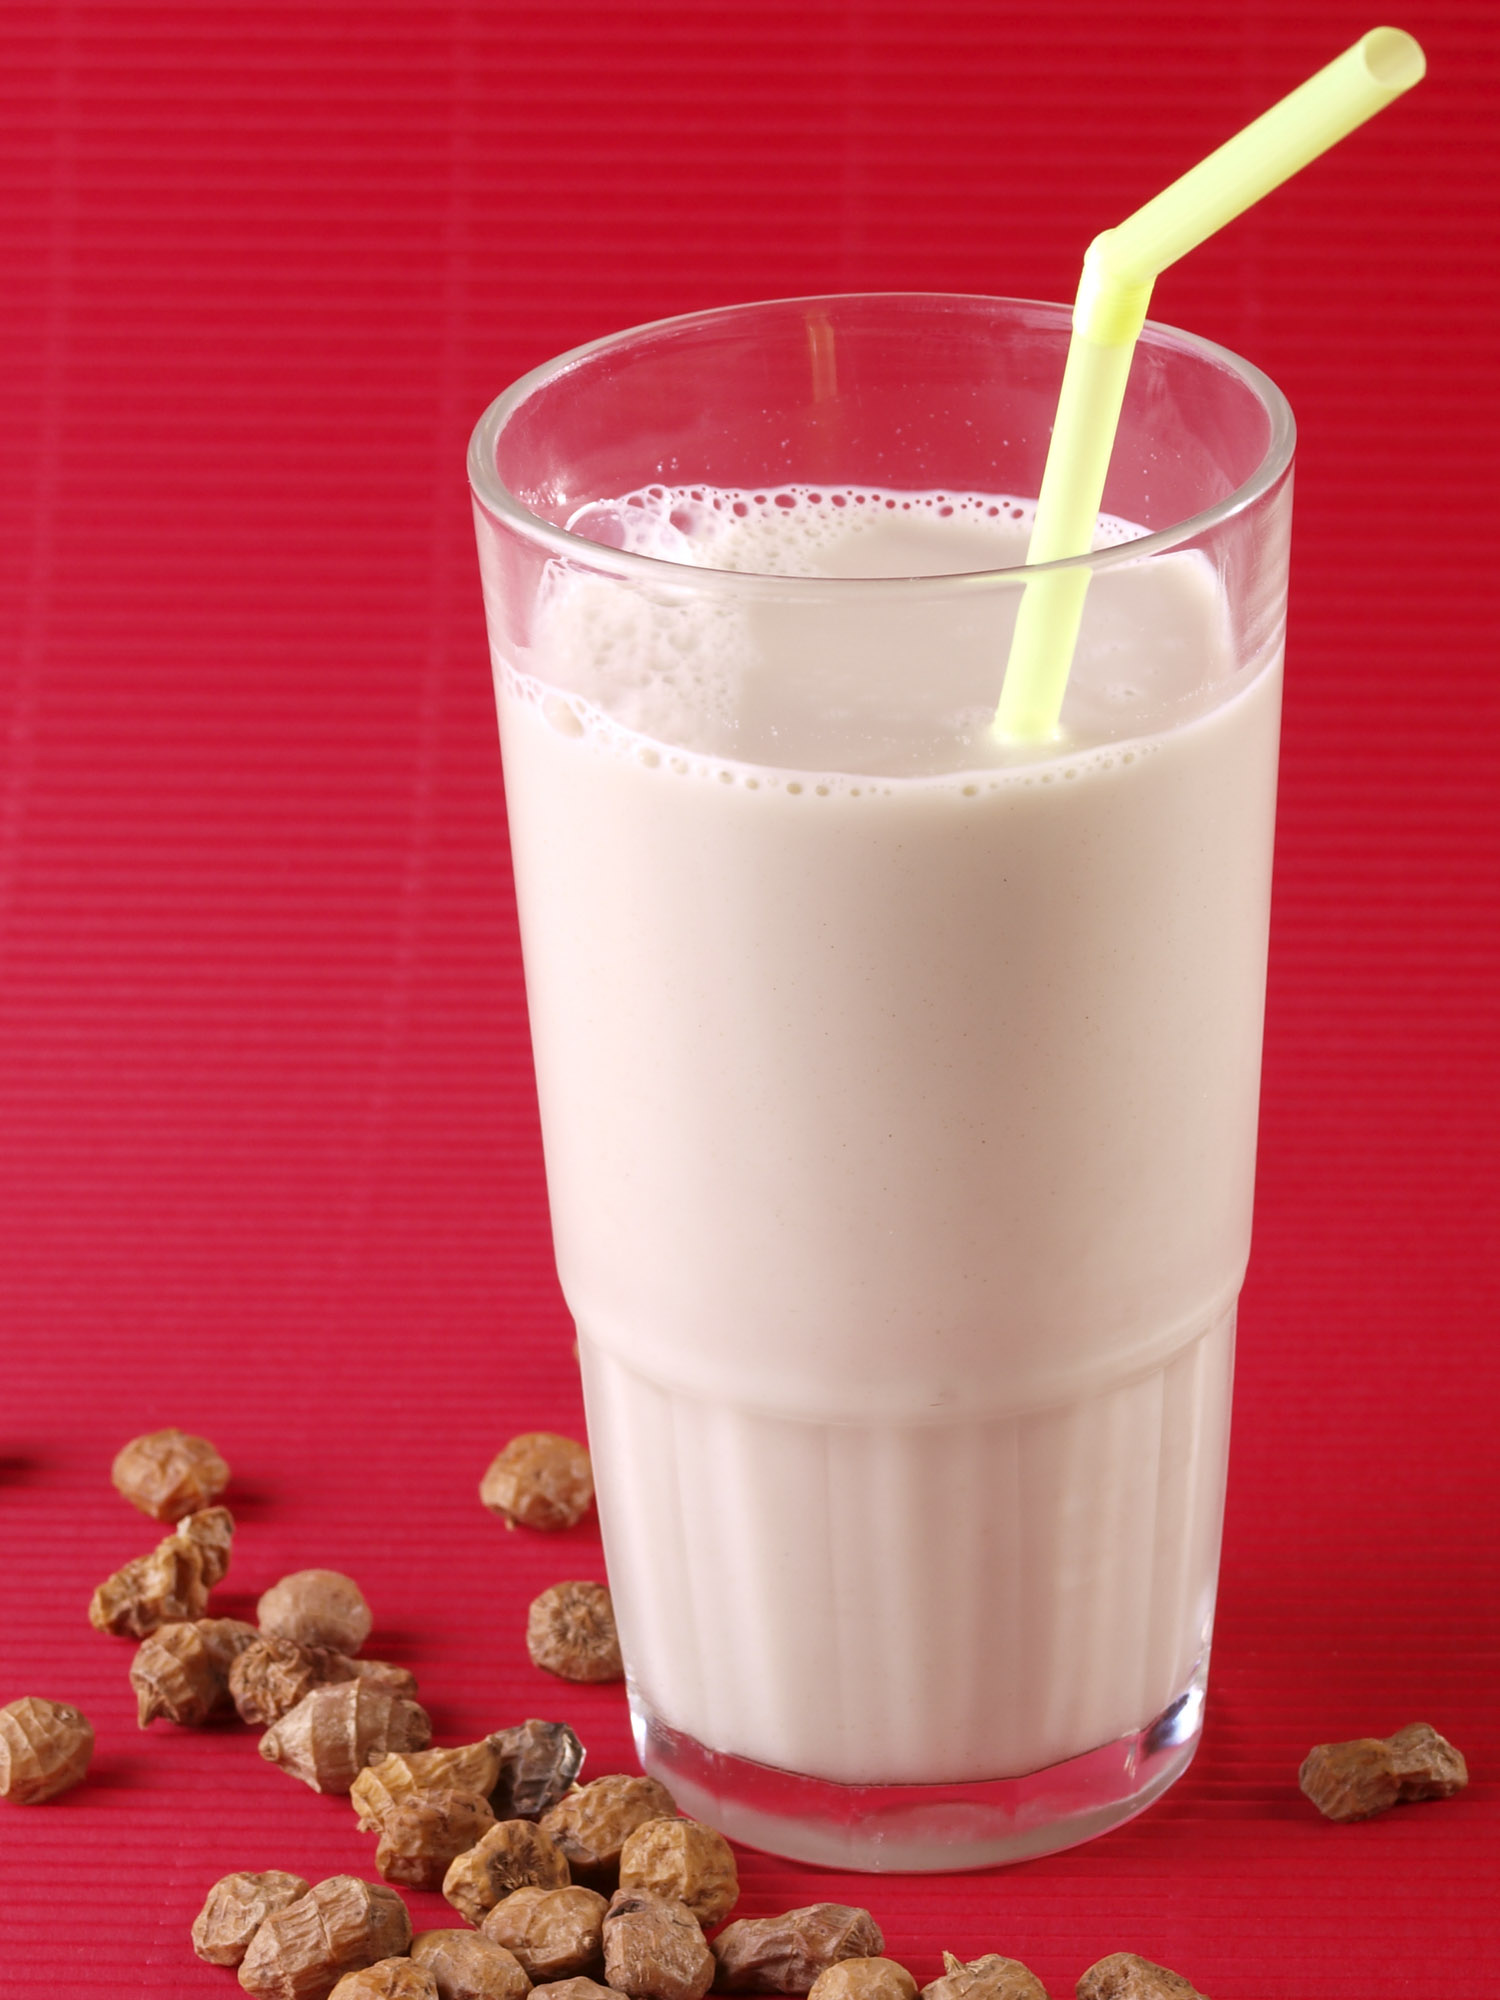 Horchata Is A Drink, Made With The Juice Of Tiger Nuts on a red background